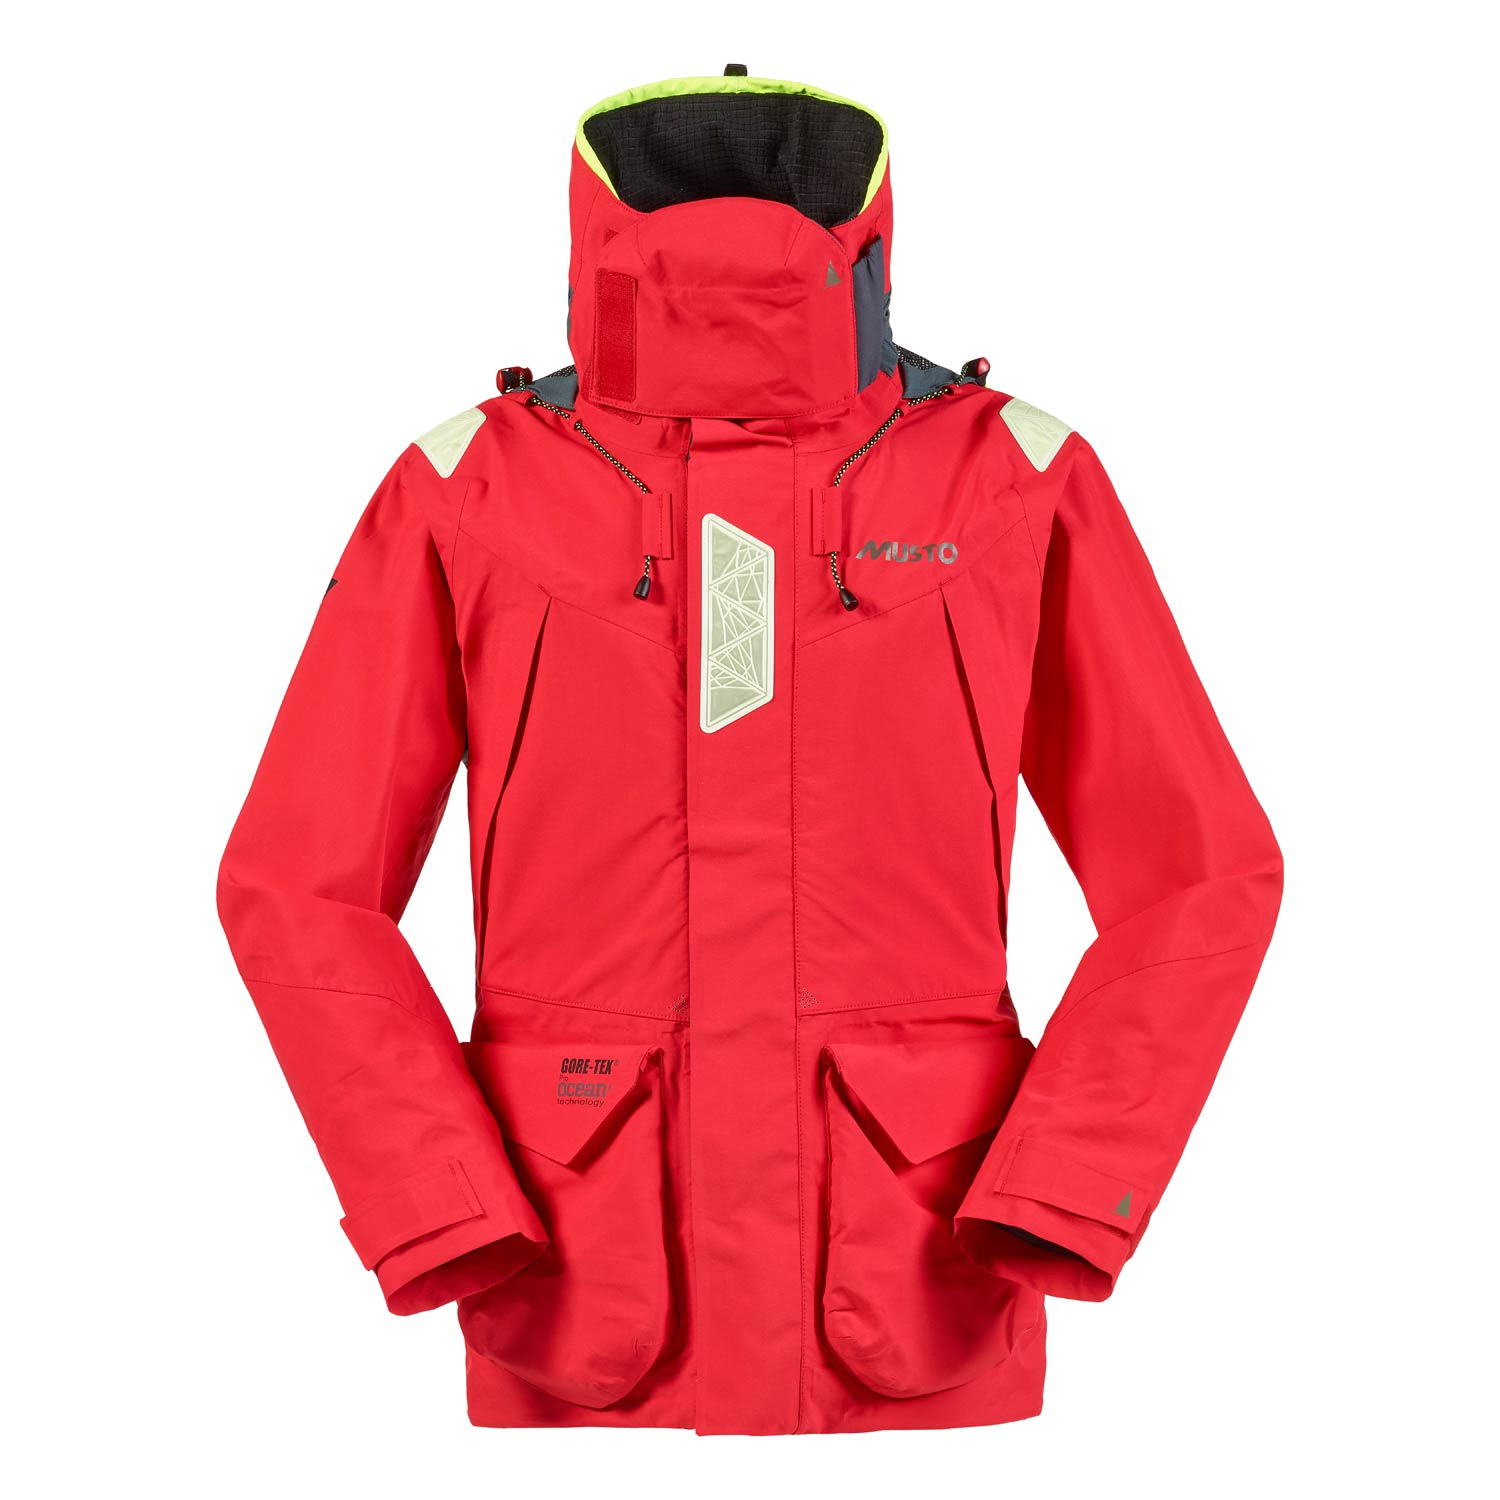 Equipment clothing coupon code